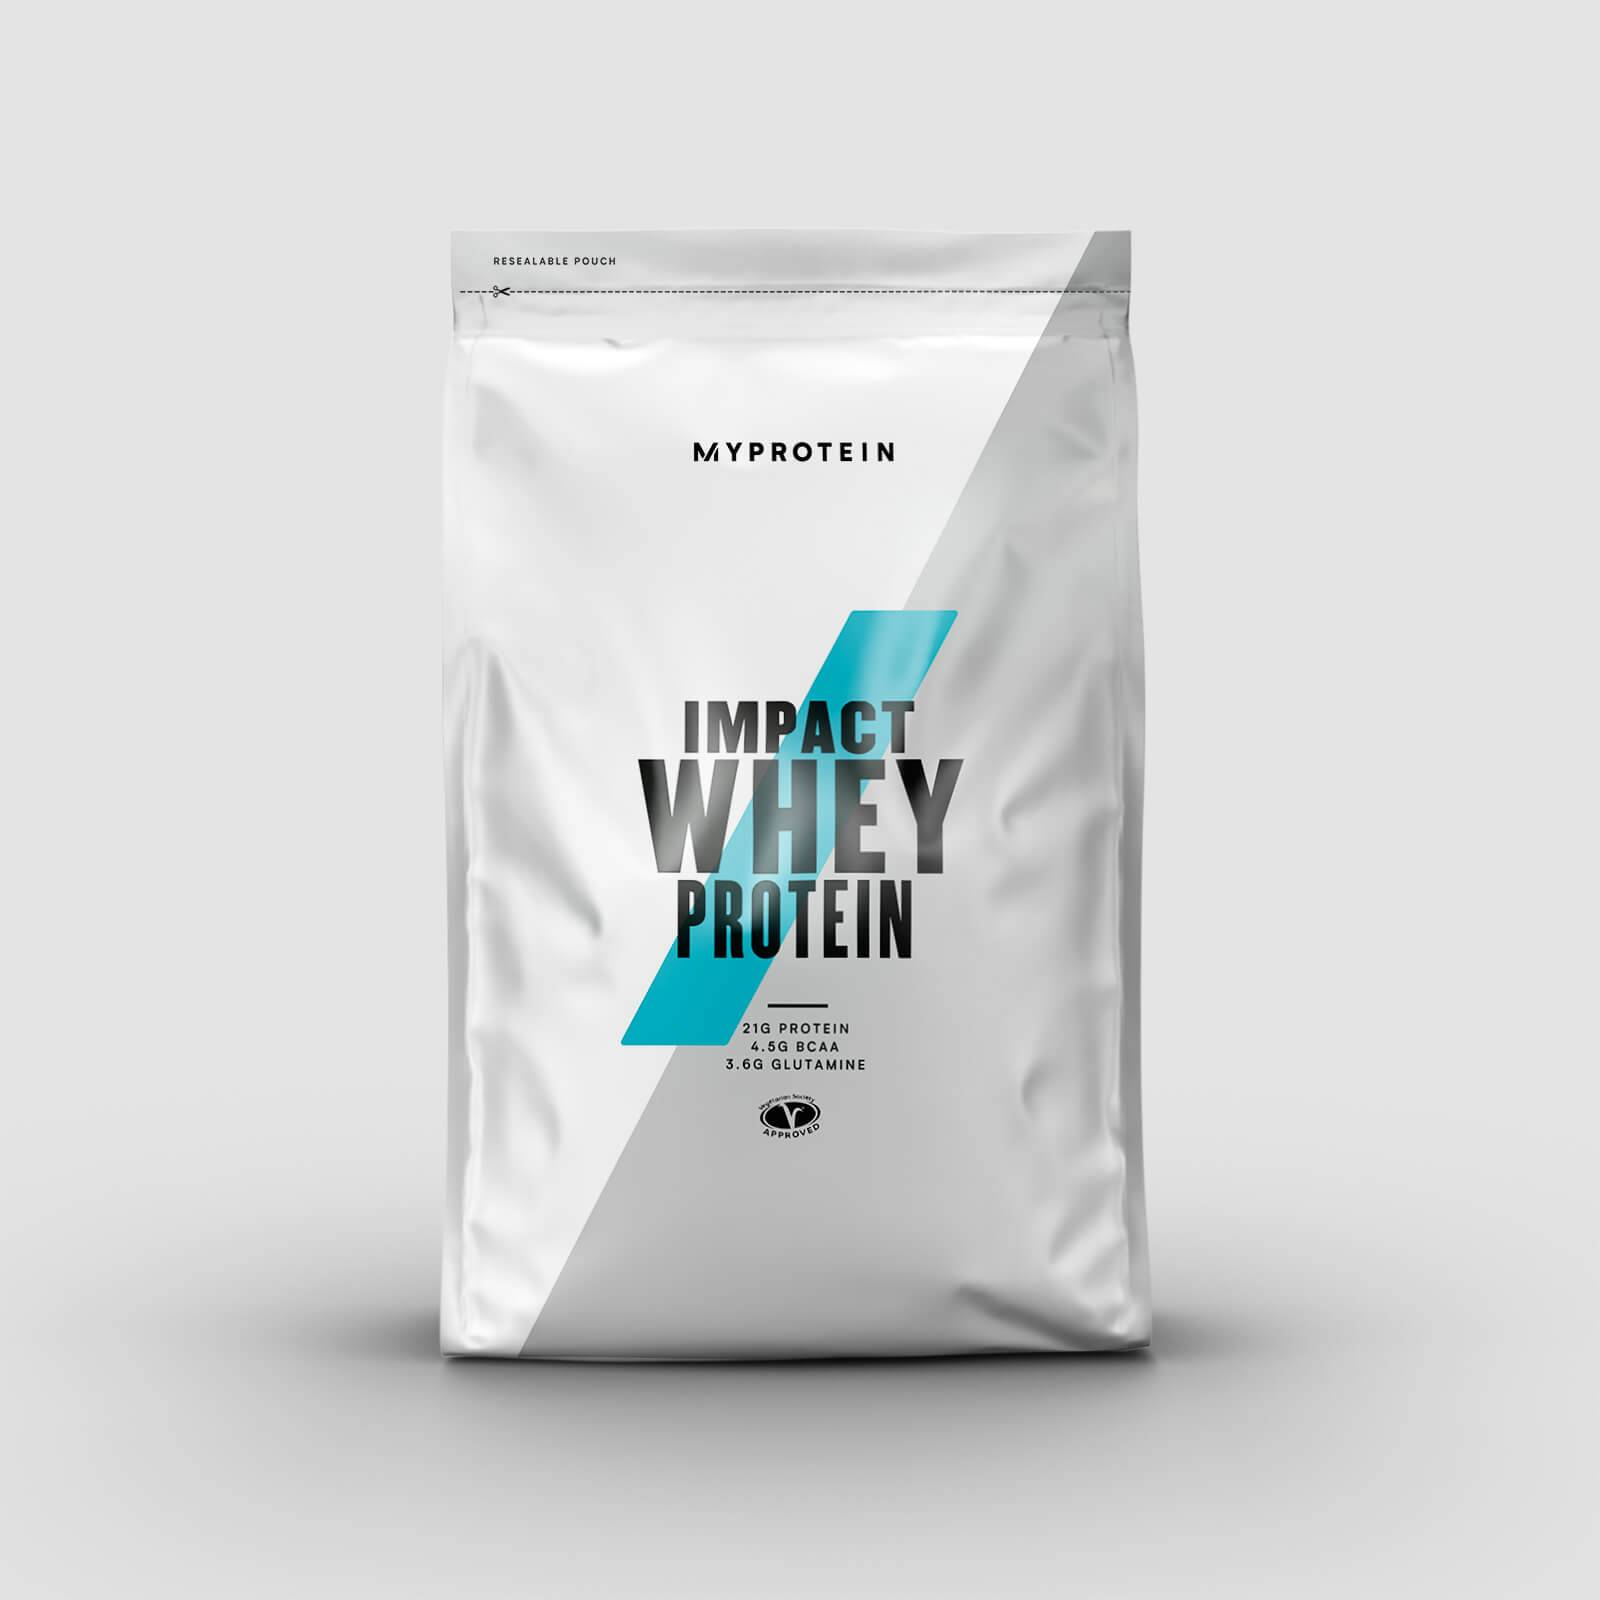 Myprotein Impact Whey Protein - 2.5kg - Rocky Road - New and Improved